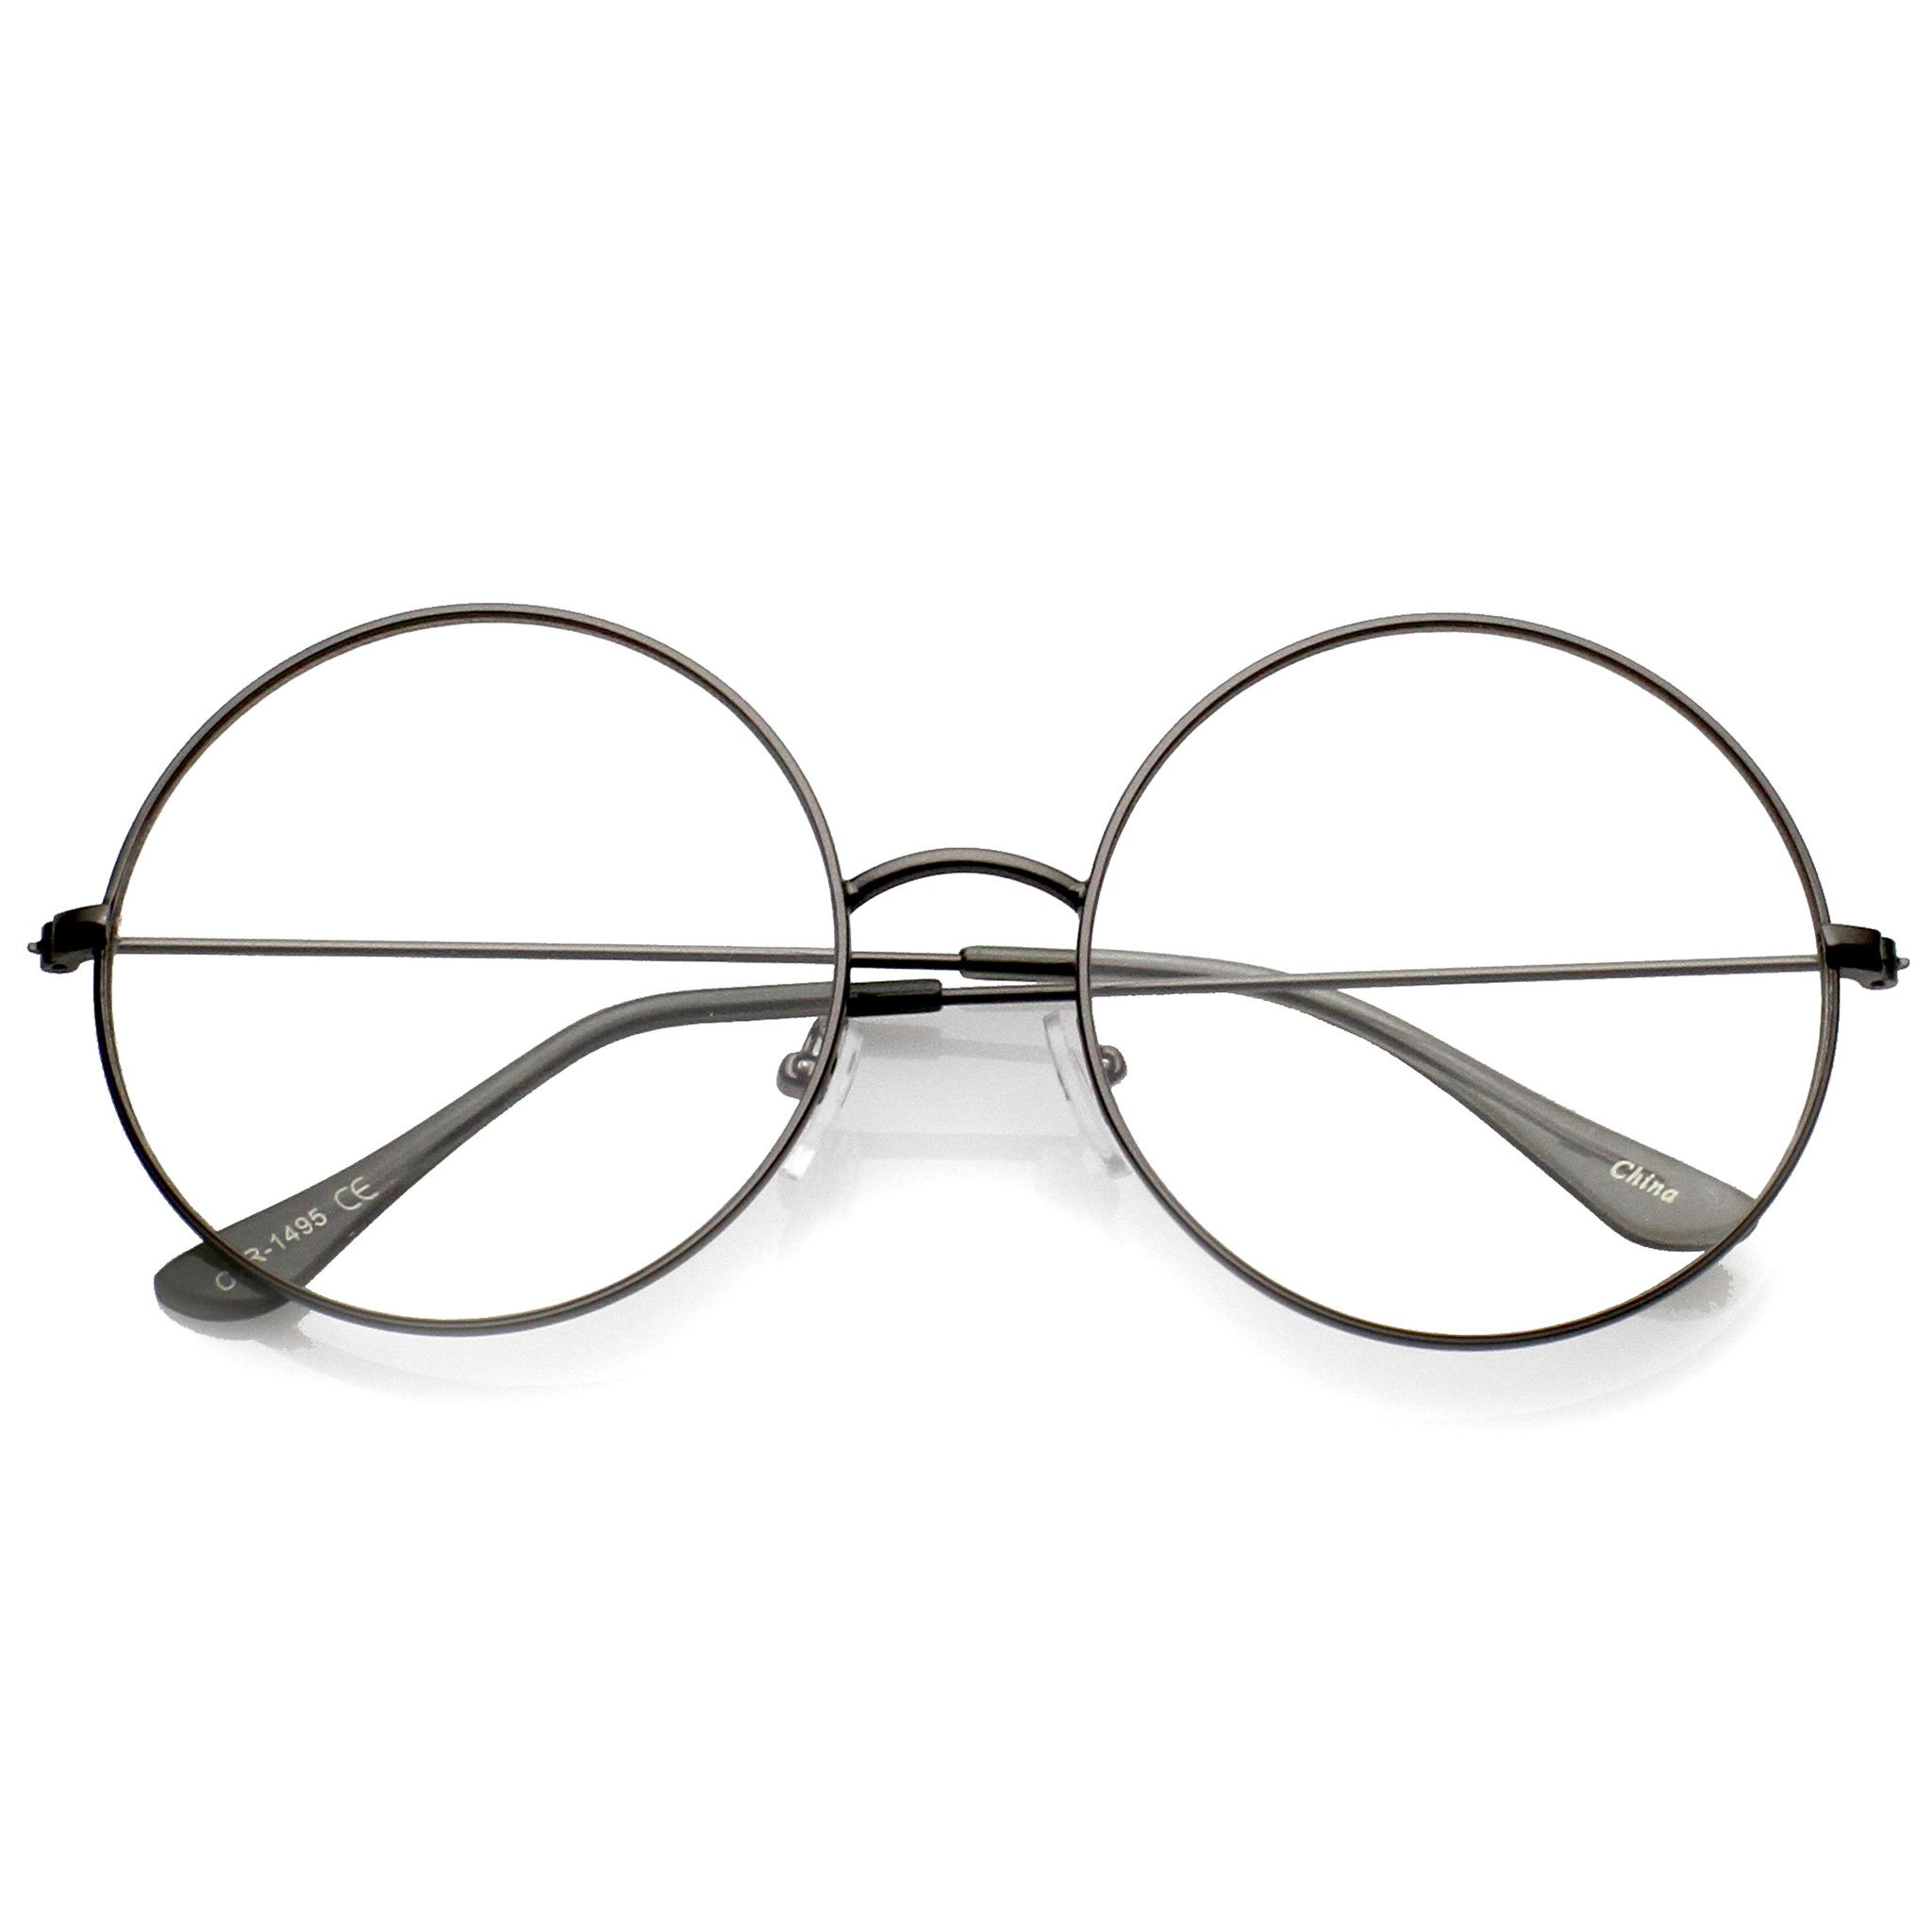 Modern Slim Round Clear Lens Dapper Glasses C143 | Products ...